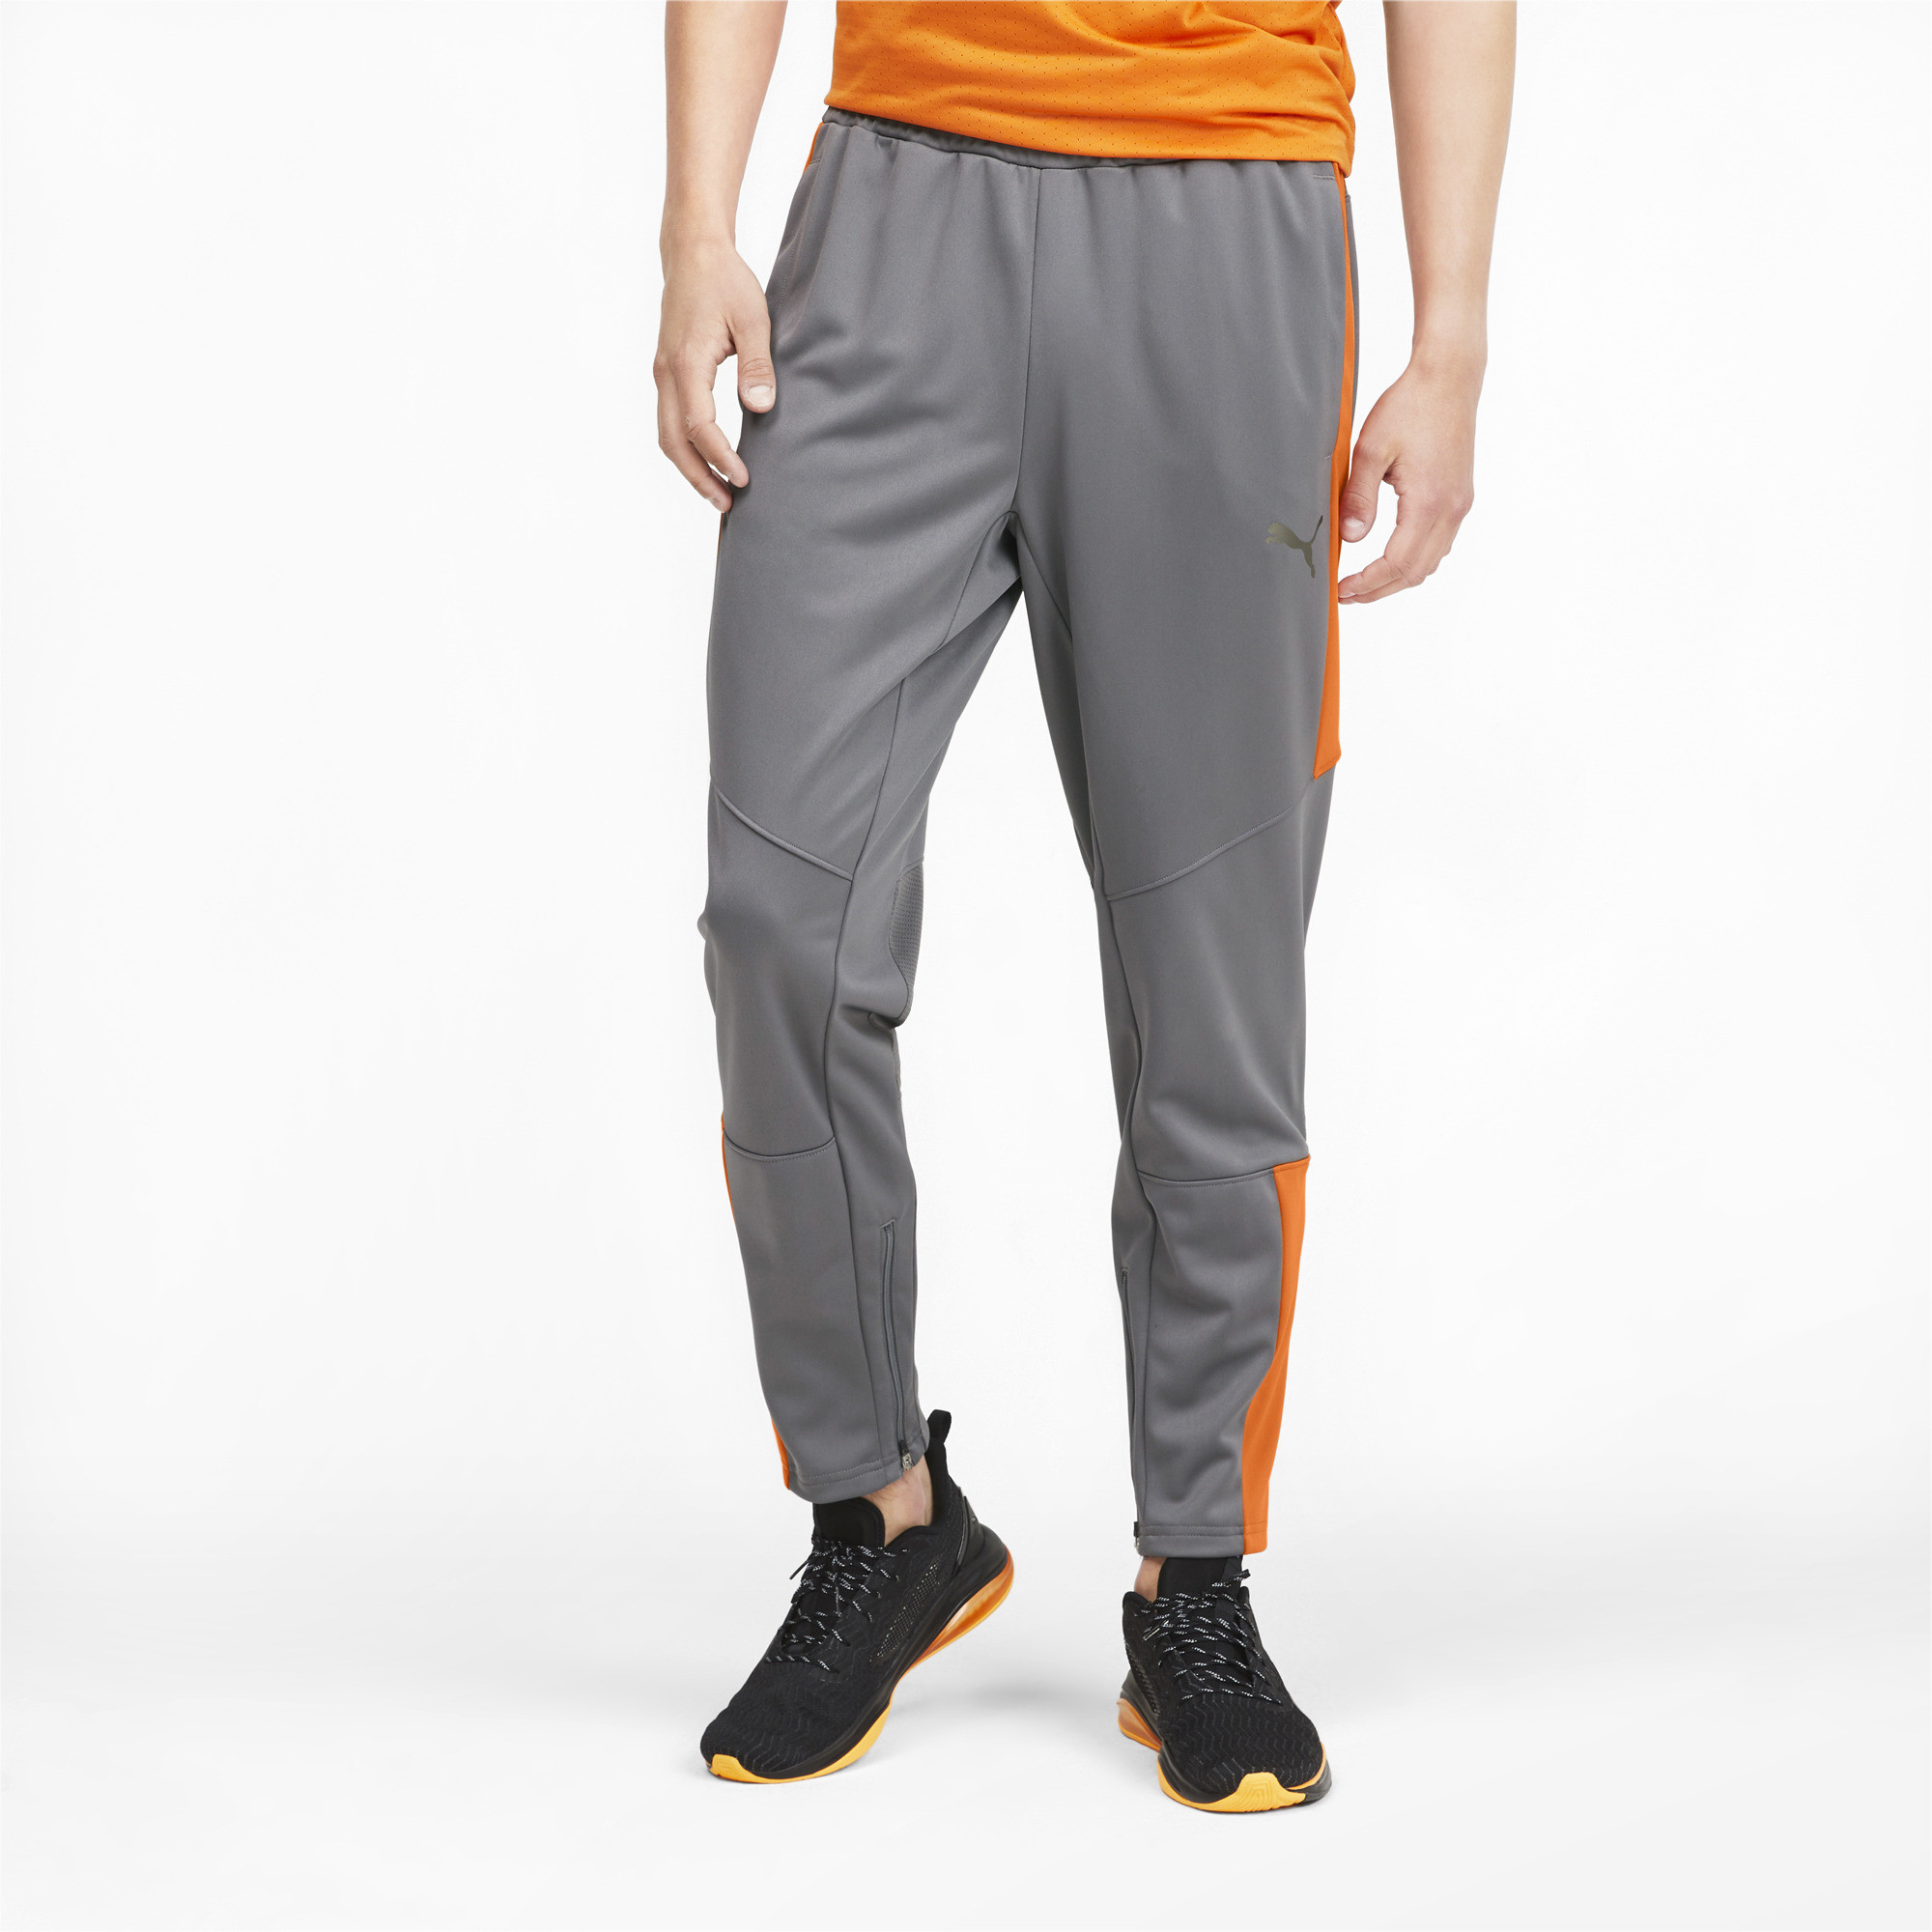 PUMA-Men-039-s-Blaster-Pants thumbnail 22